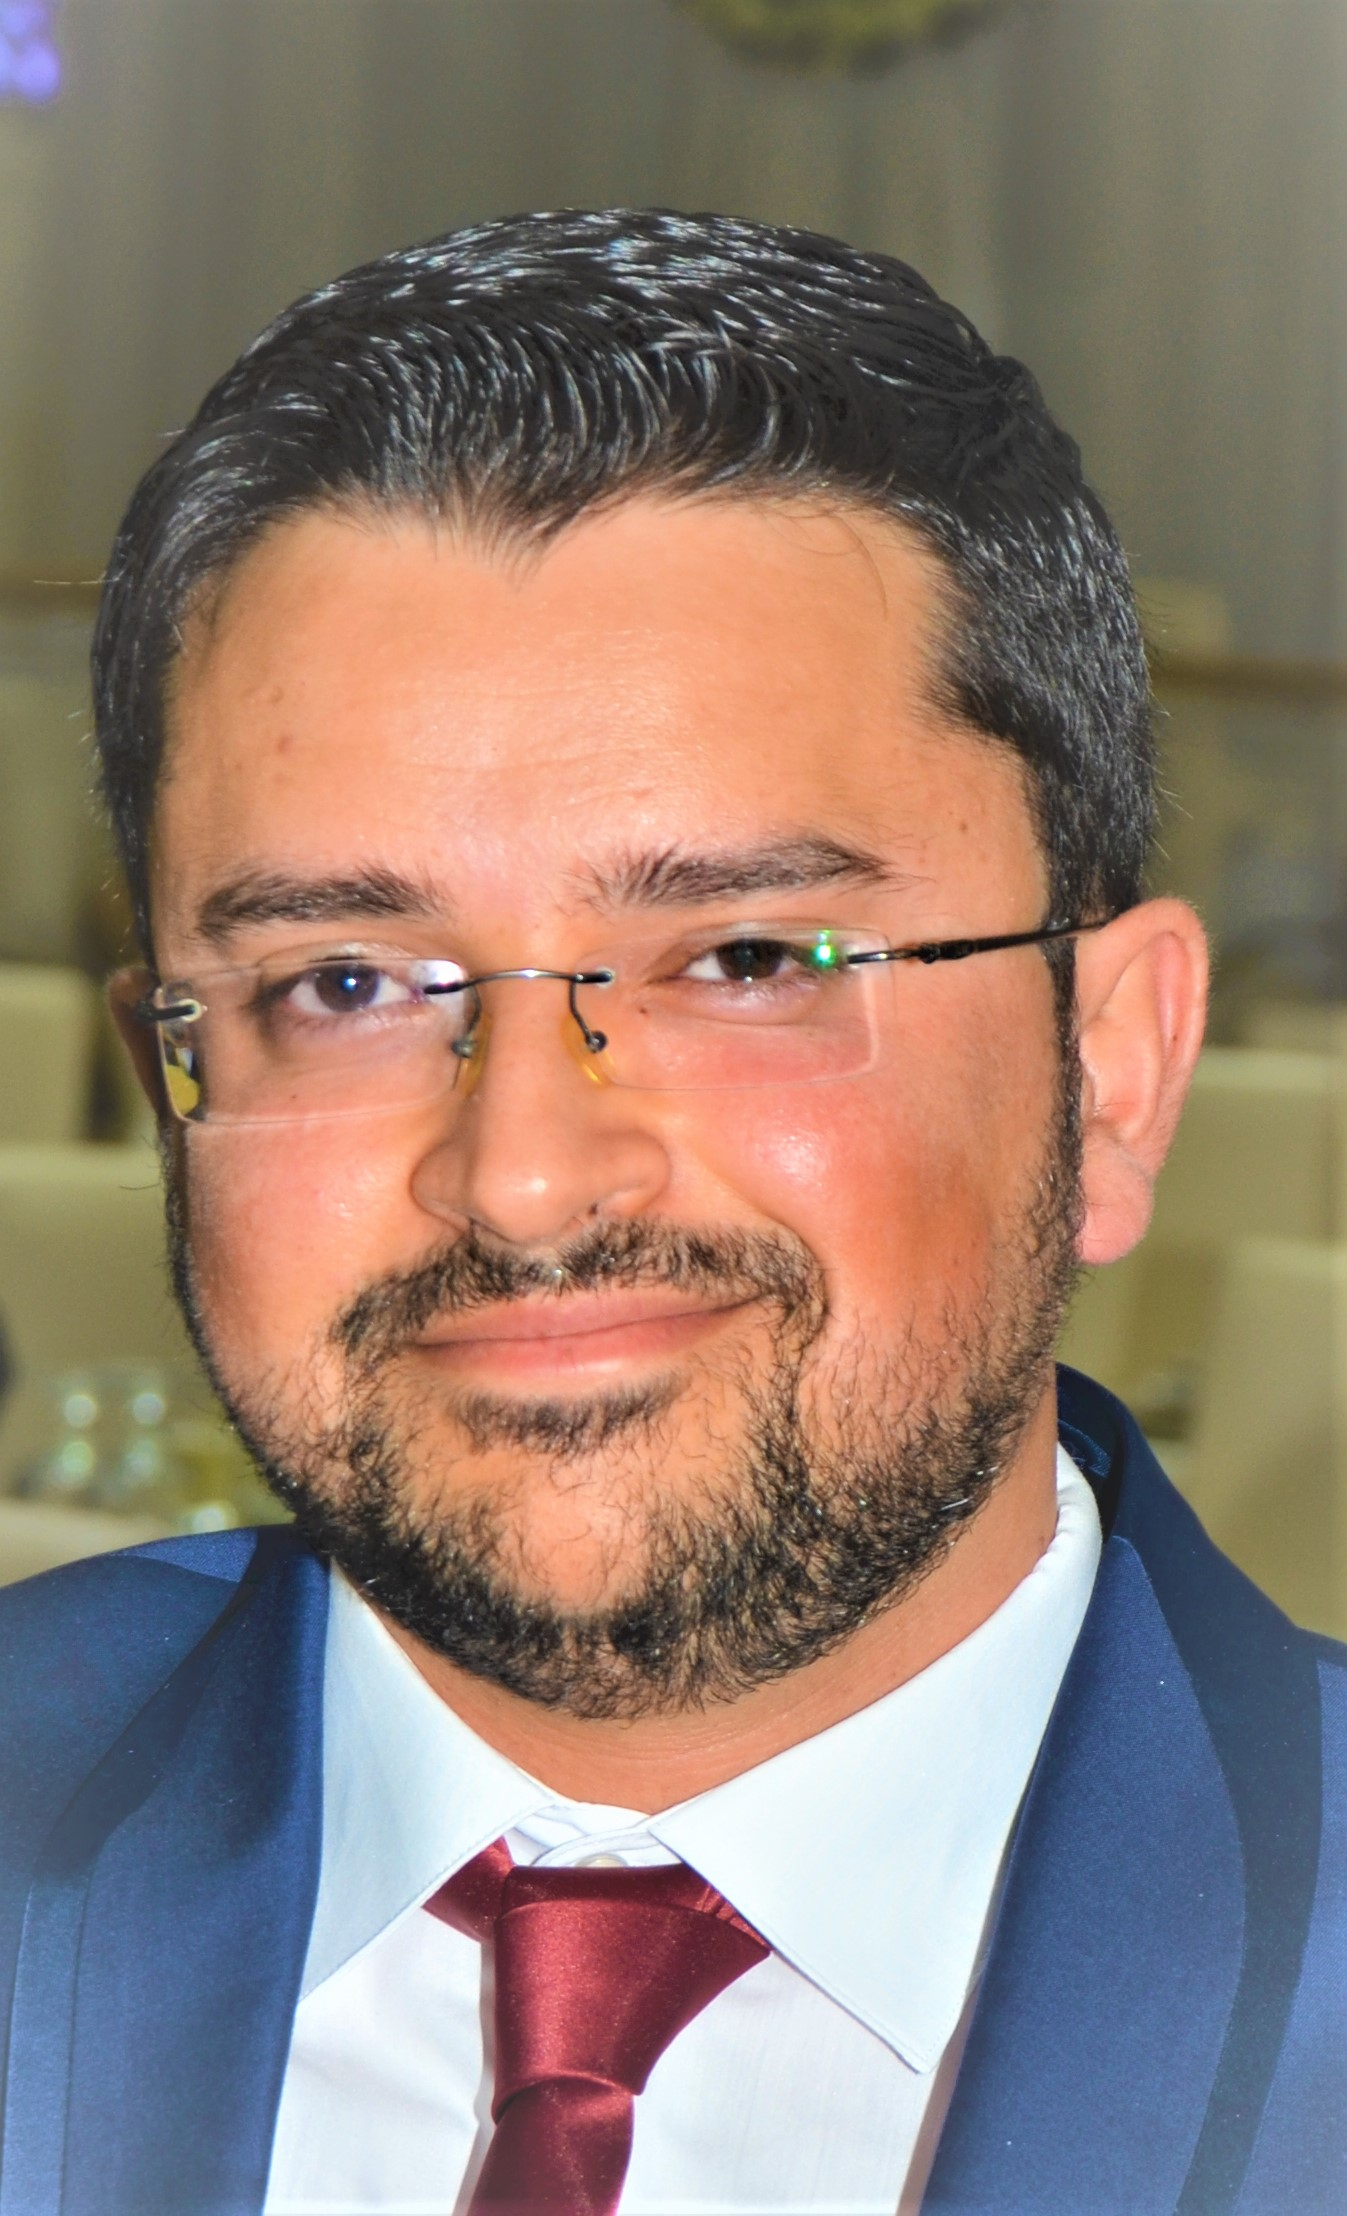 Mohamed Taghouti